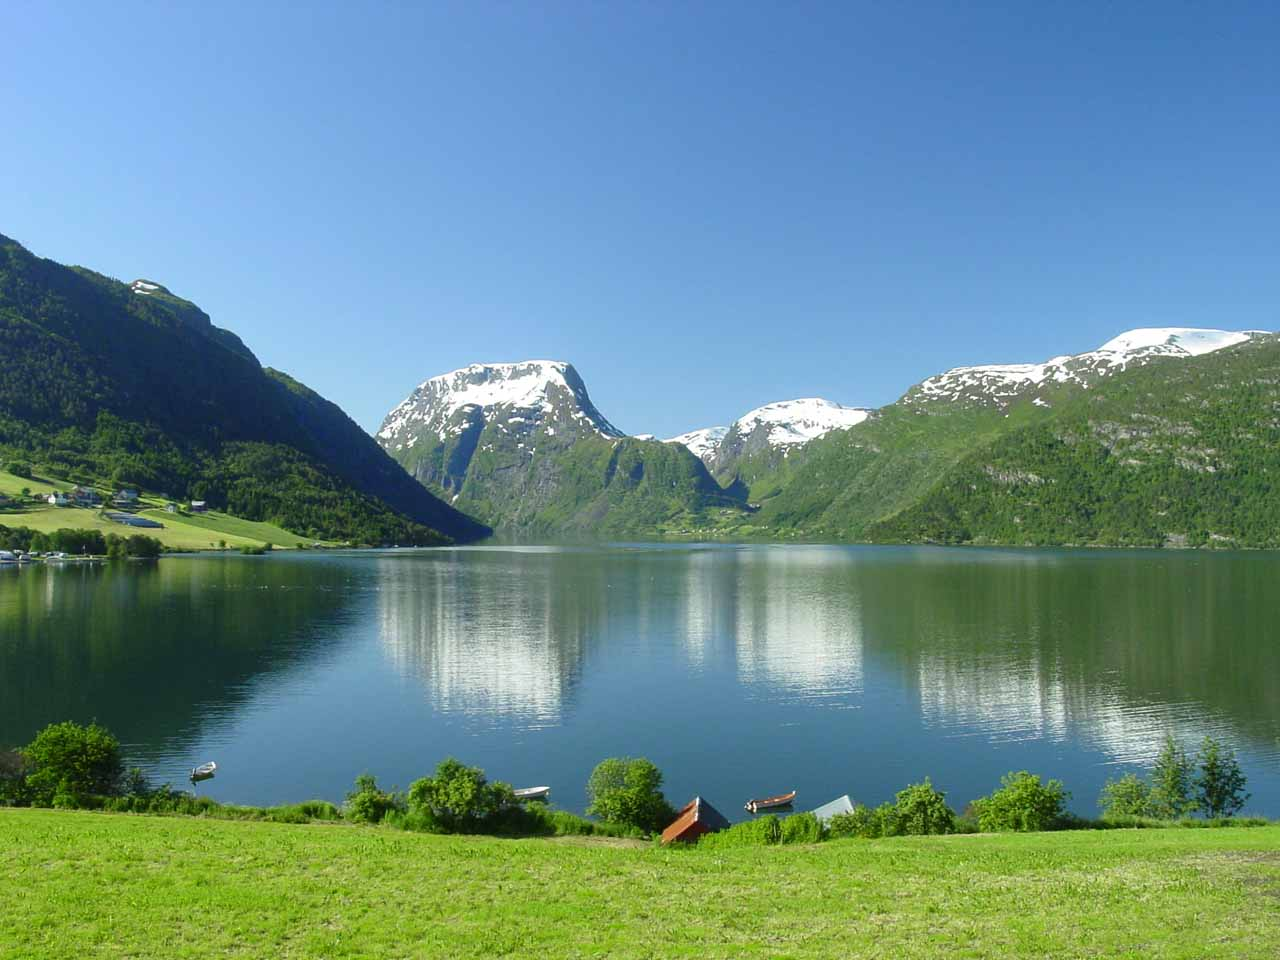 After visiting Waterfall Country in the municipalities of Førde and Gaular (which included Huldrefossen), we then headed north towards the lake Breimsvatnet, which is shown here